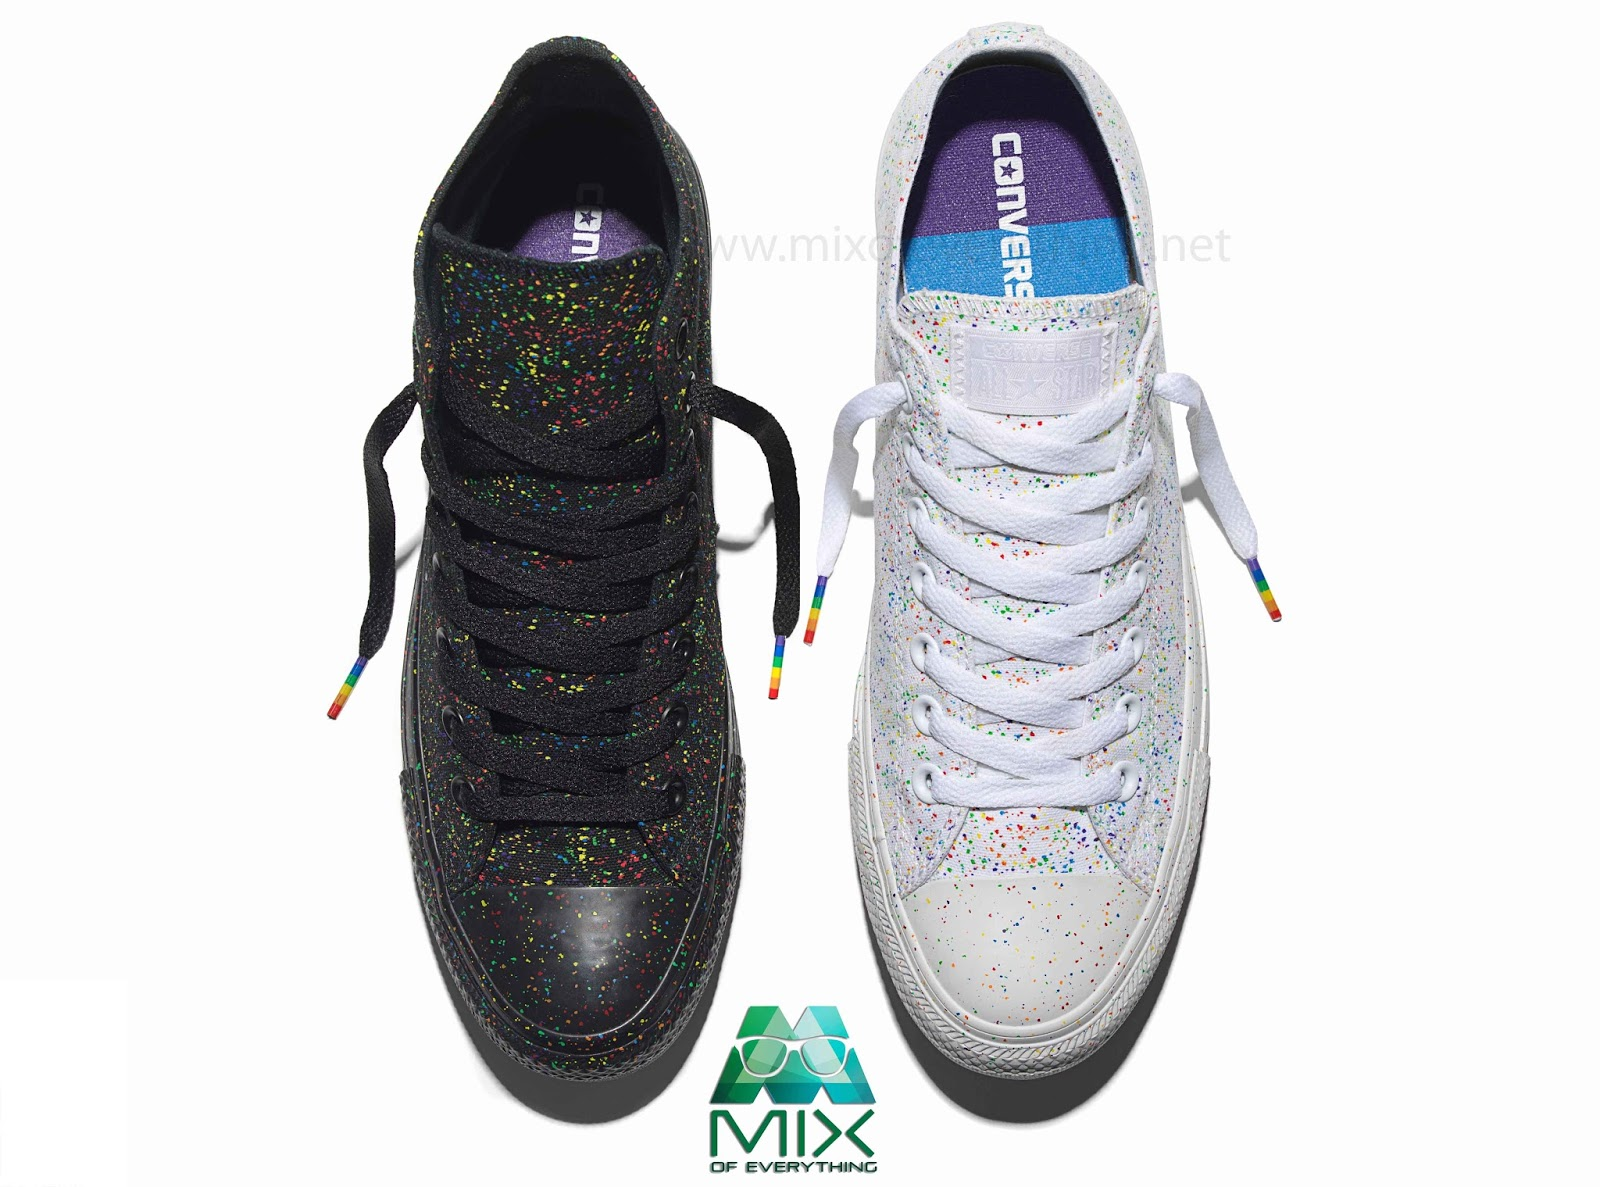 8db55421e13c 2016 Converse Pride Collection - Hello! Welcome to my blog!